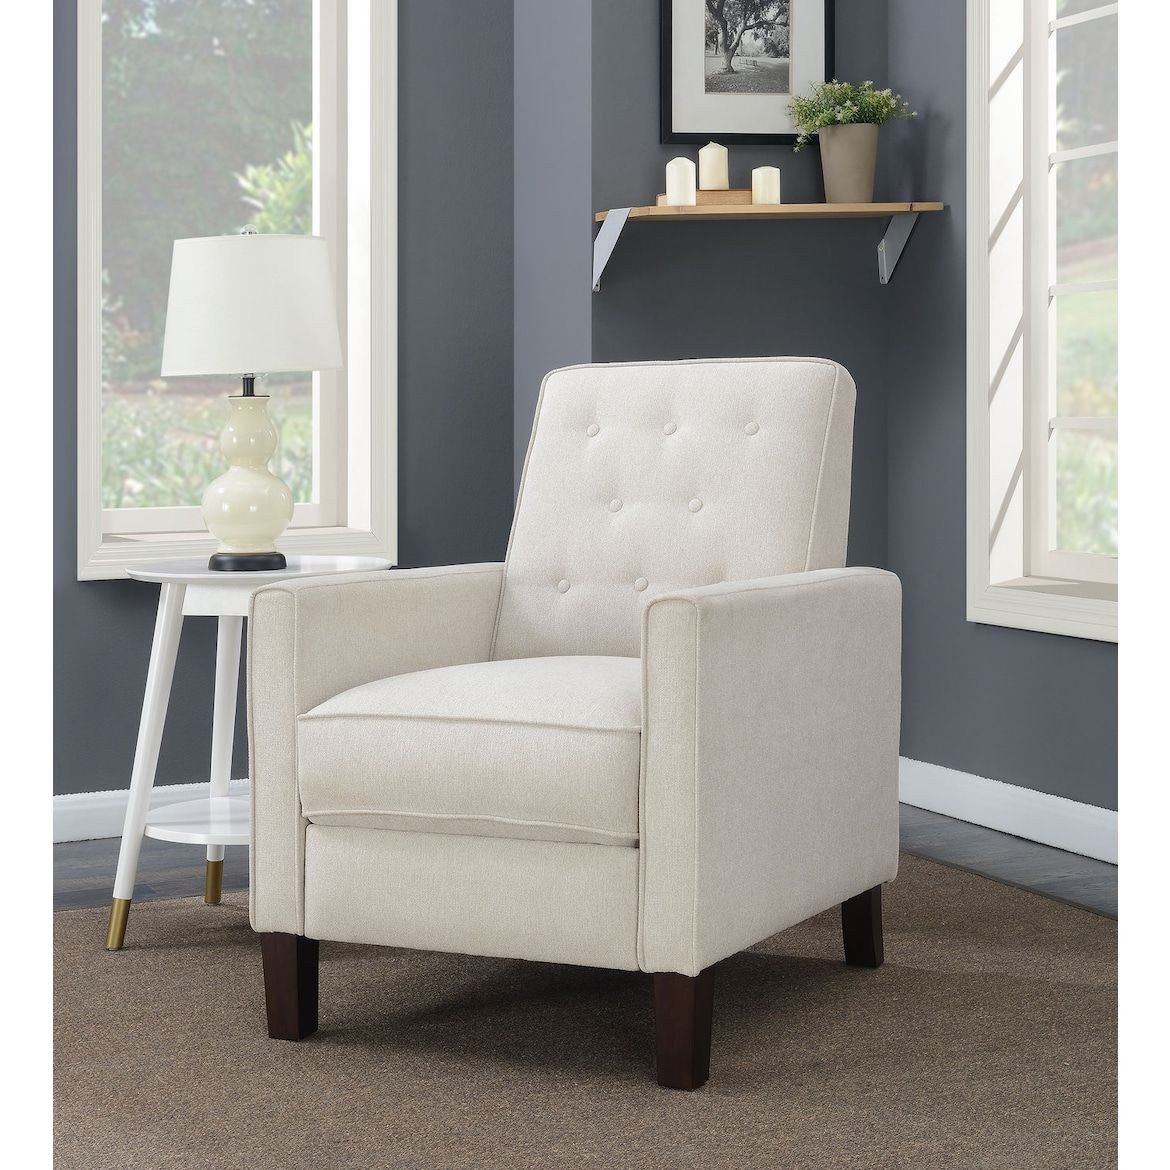 Small Recliners for Bedroom Lovely Gregory Manual Recliner Cream